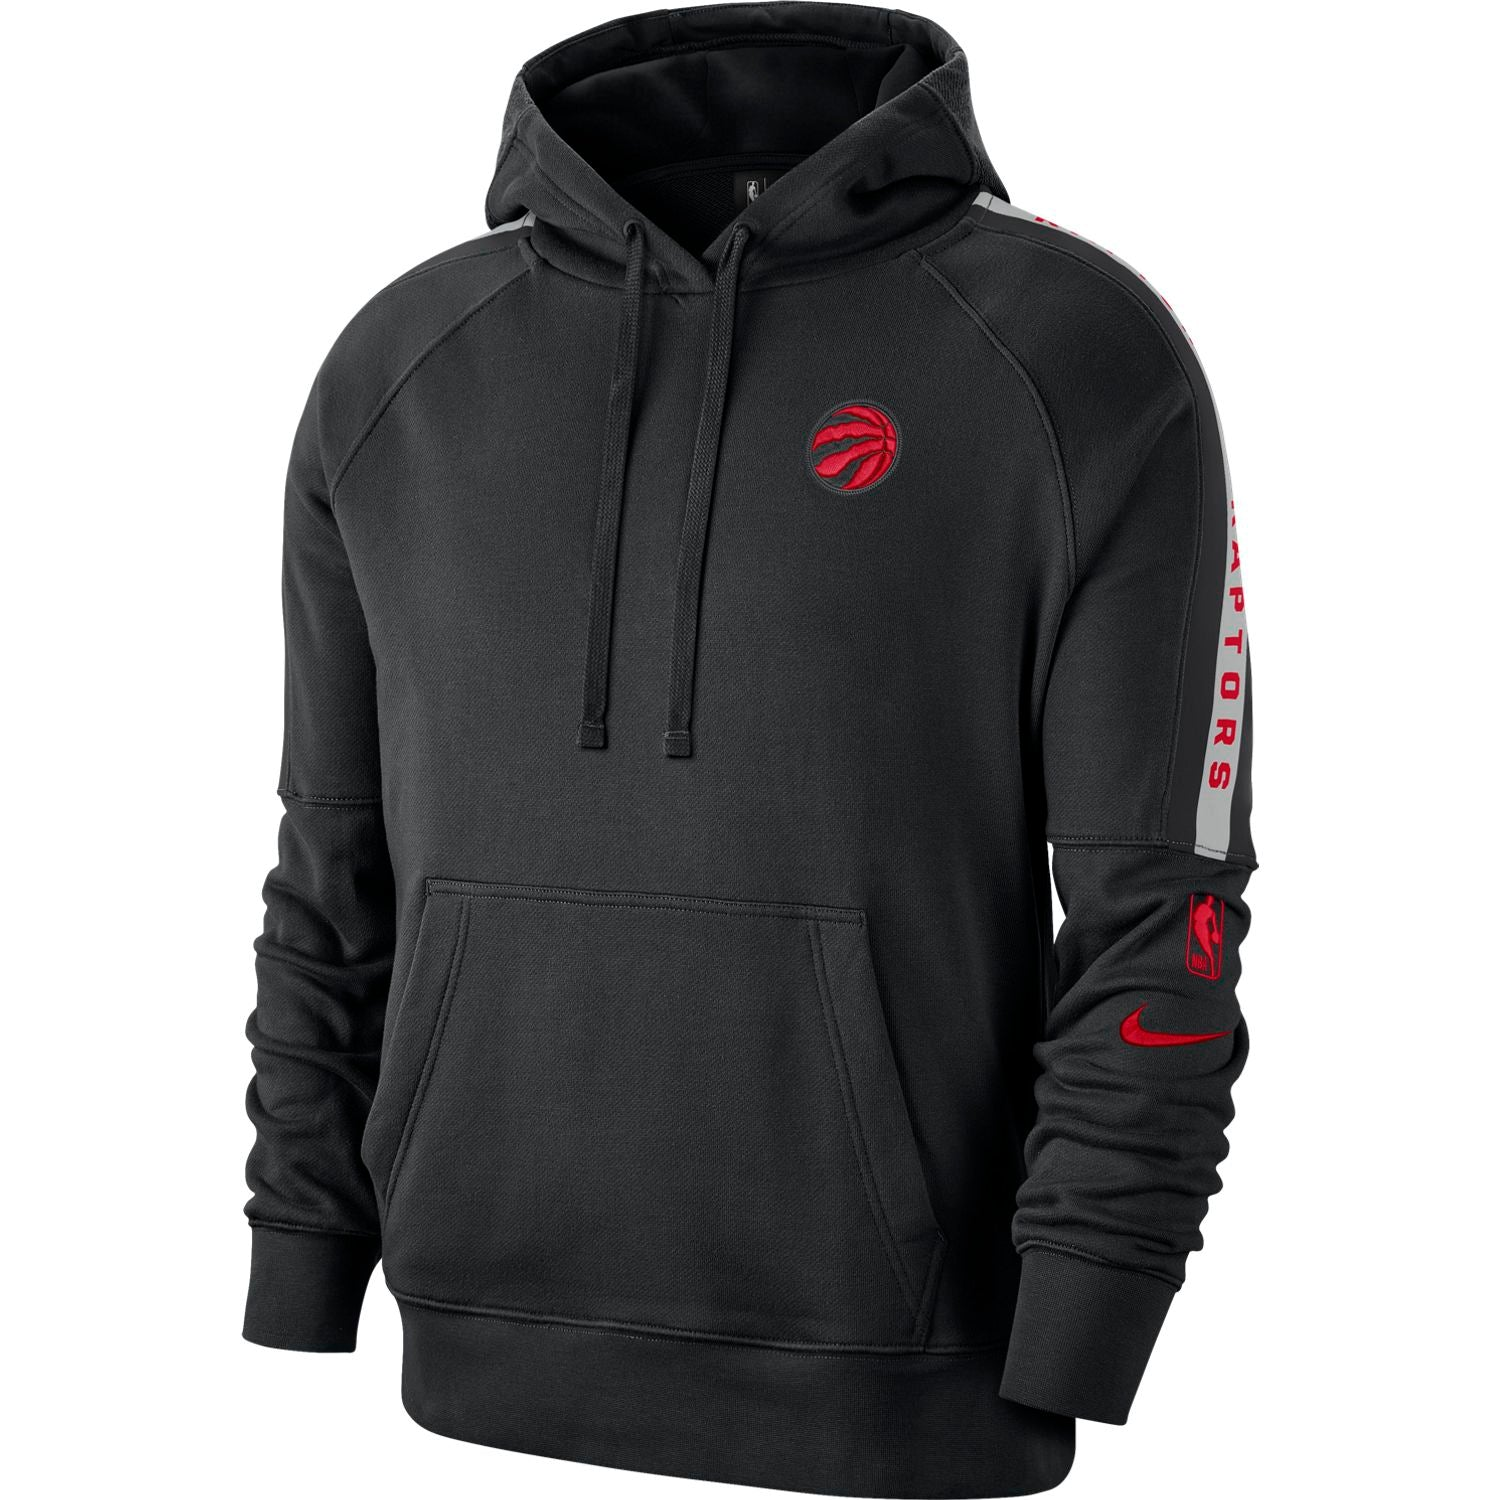 Raptors Nike Men's Courtside Hoody